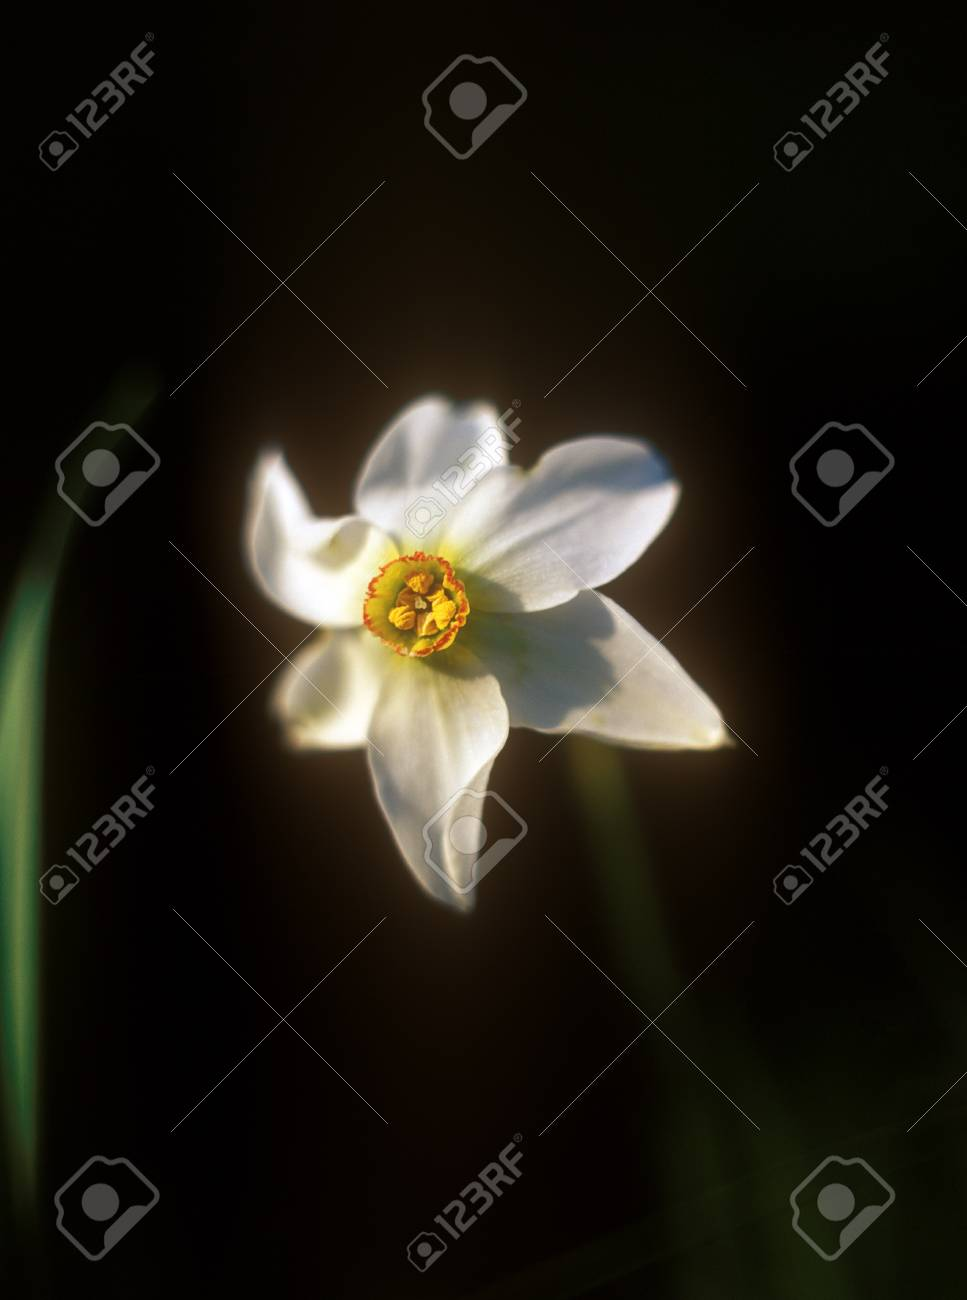 Daffodil in the warm light of sunset in Narcissi Valley. Stock Photo - 11958846